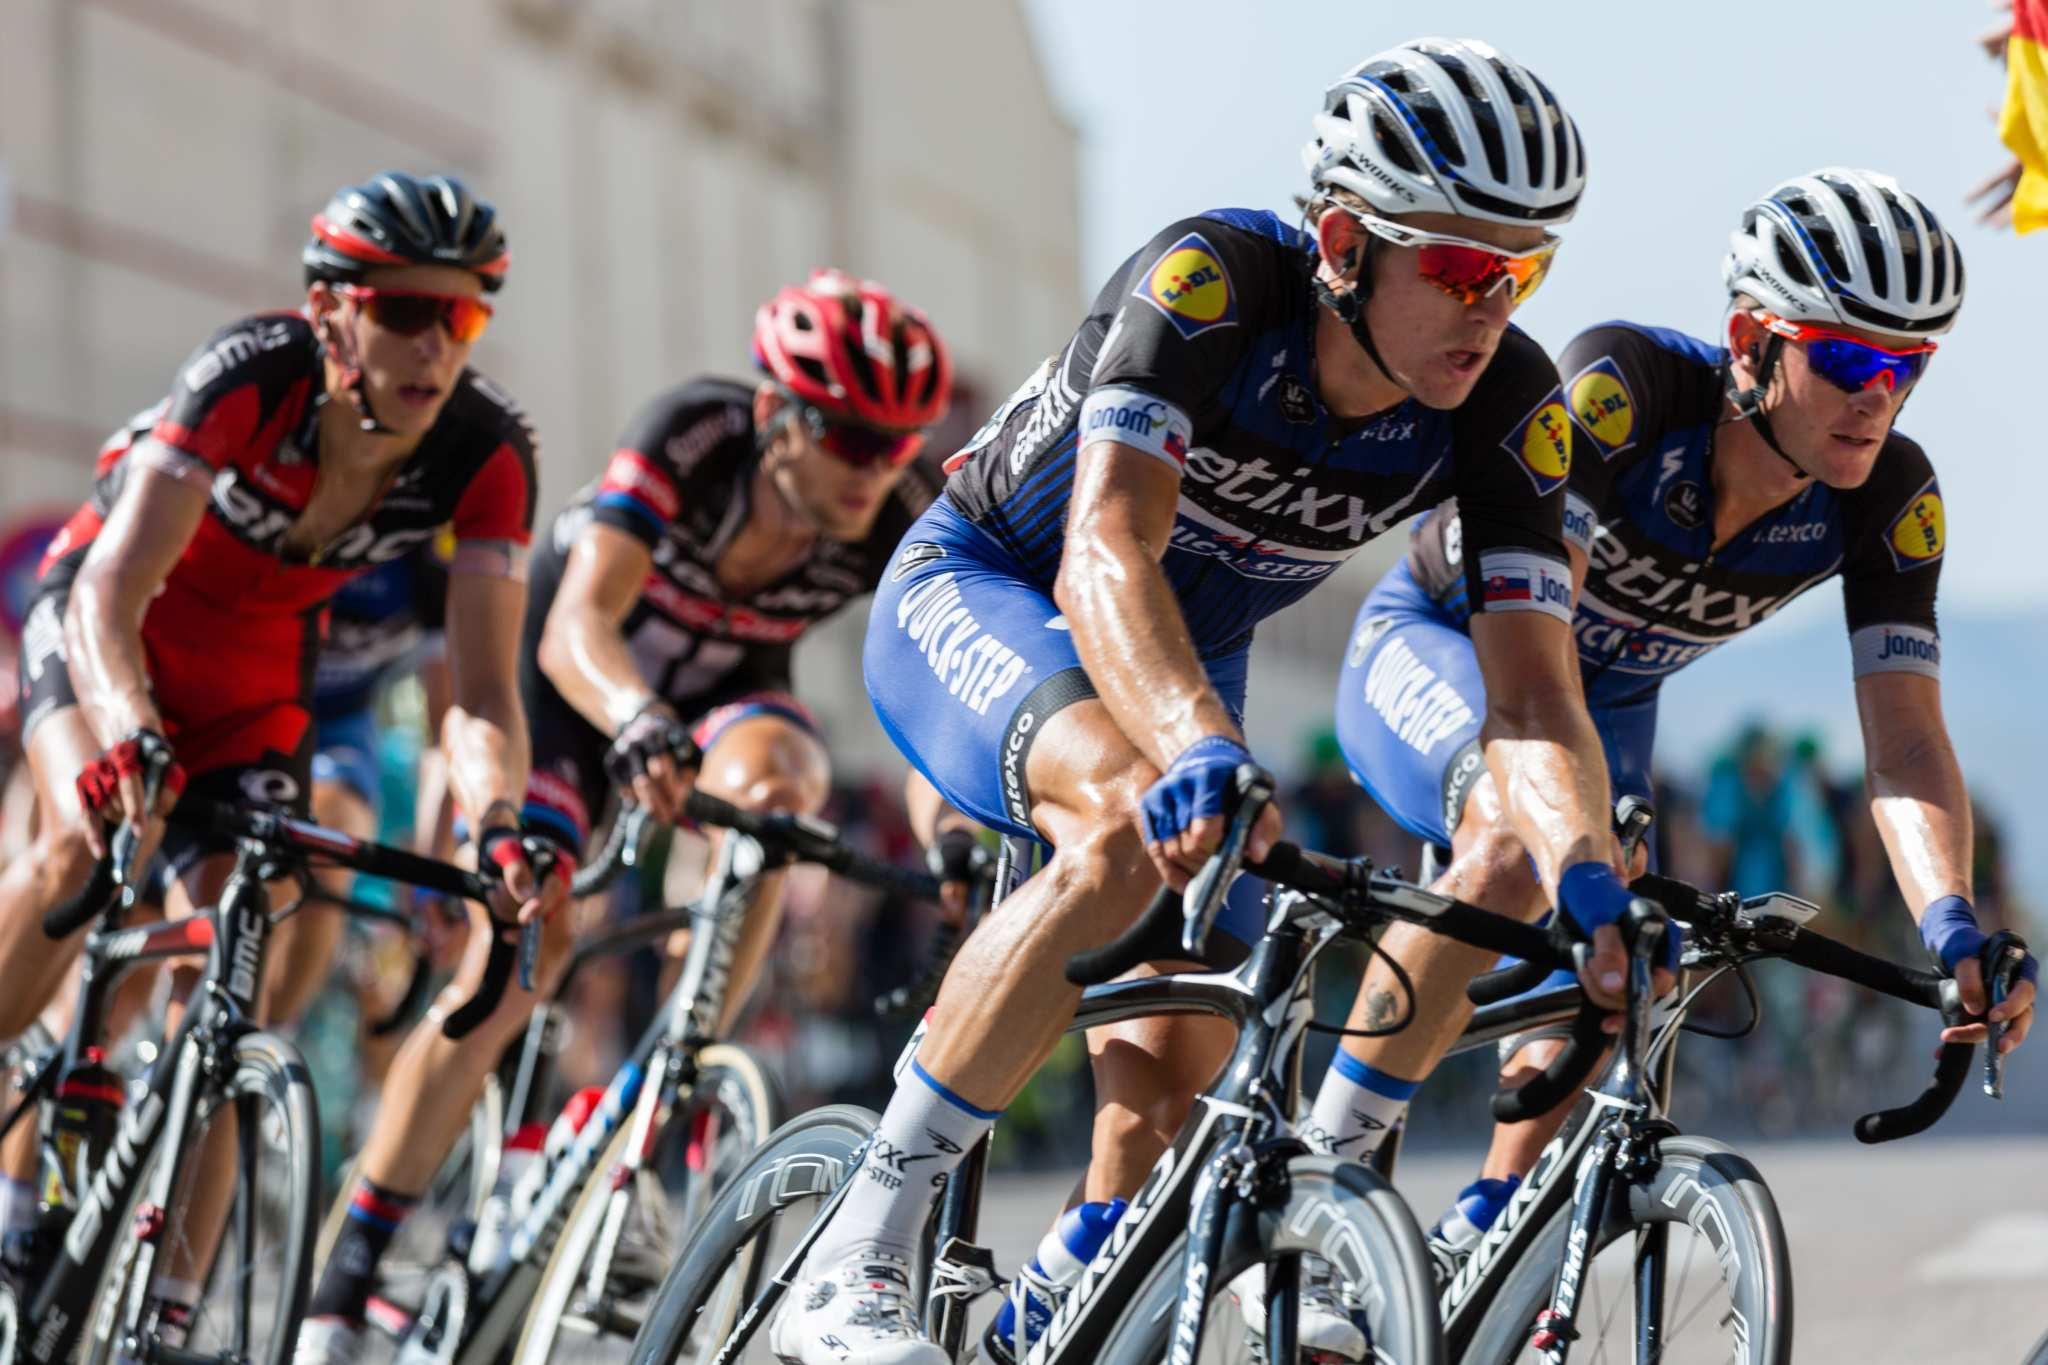 Cyclists race on a roadway in a tight pack, wearing sponsored pro cyclist gear and helmets. Some endurance athletes use CBD to reduce their dependence on pharmaceutical painkillers to relieve the soreness of workouts.